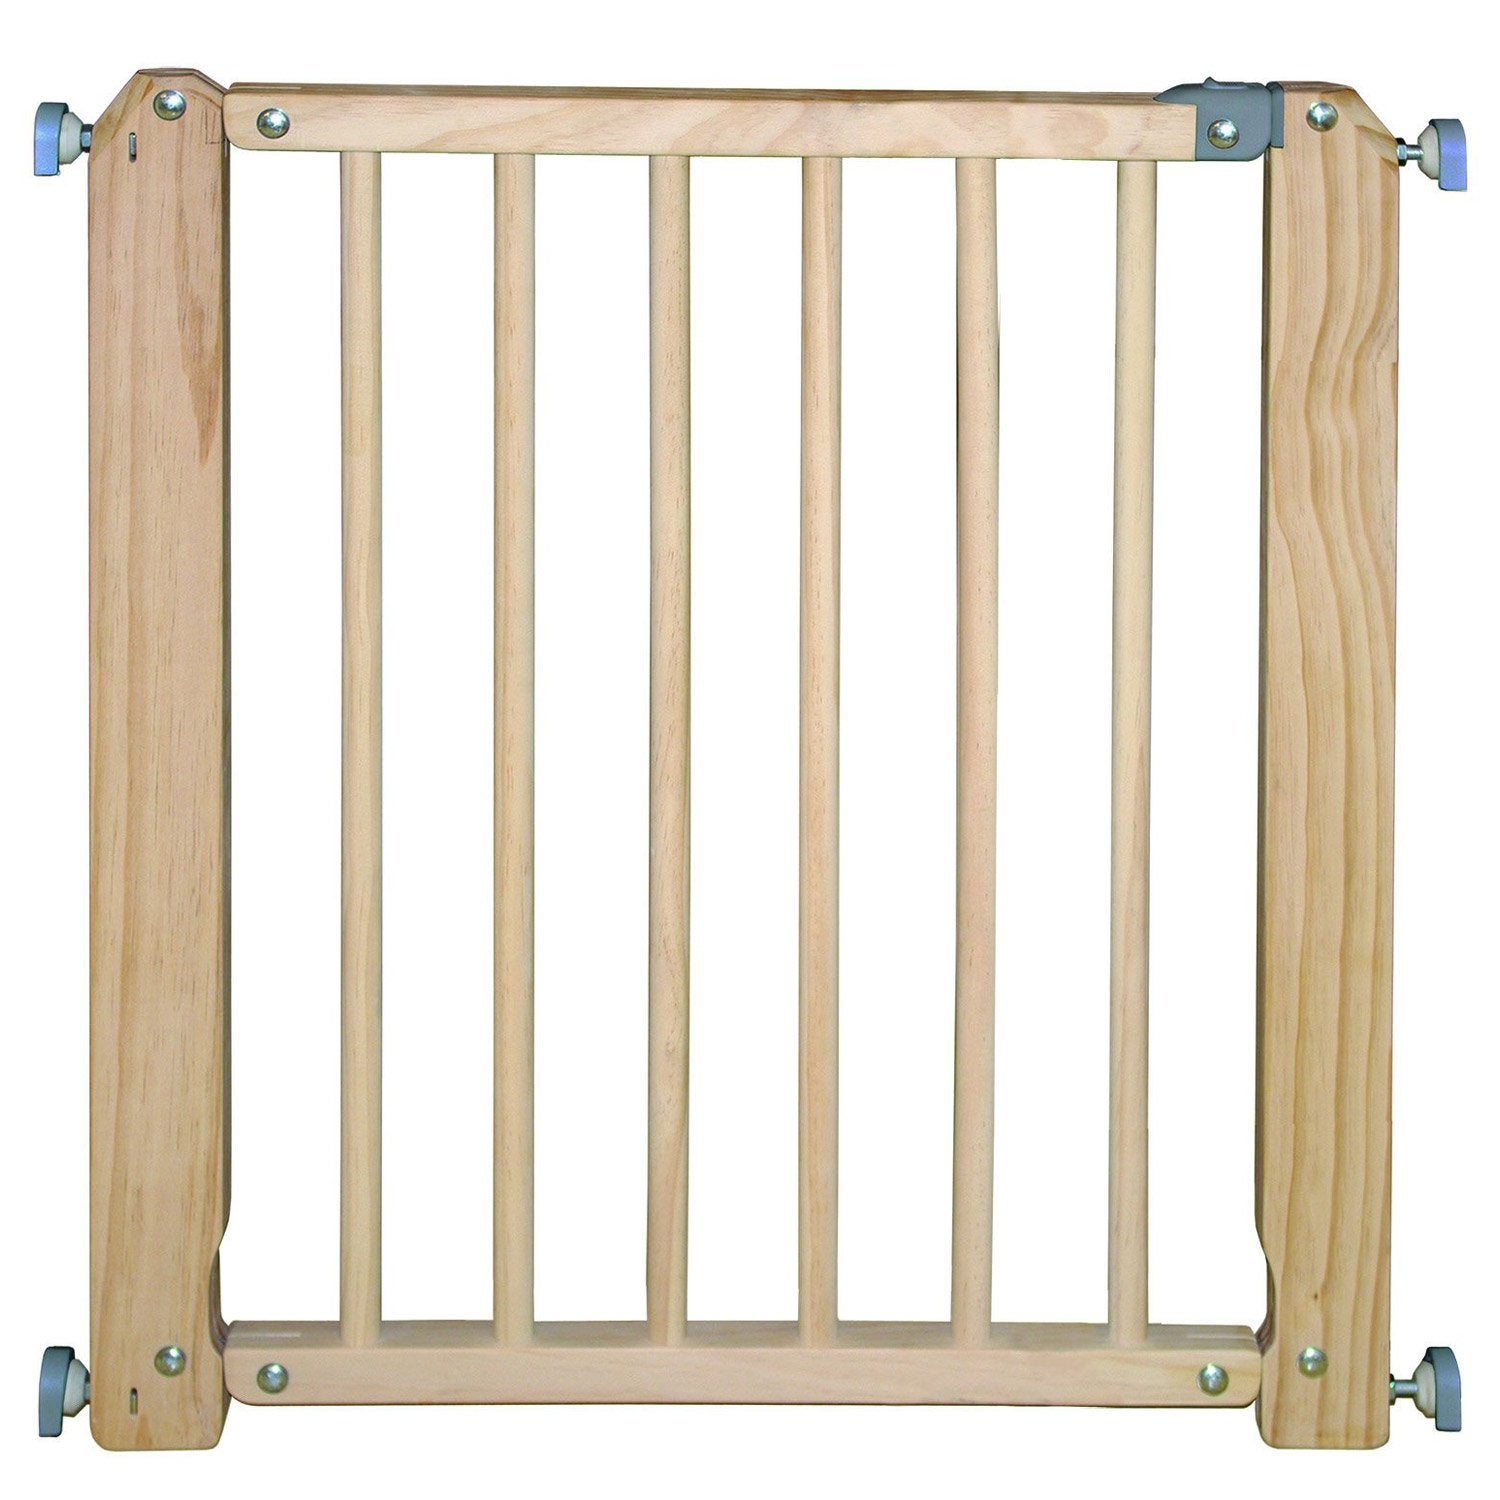 Barri re de s curit enfant en bois naturel long min max for Bois pour barriere exterieur